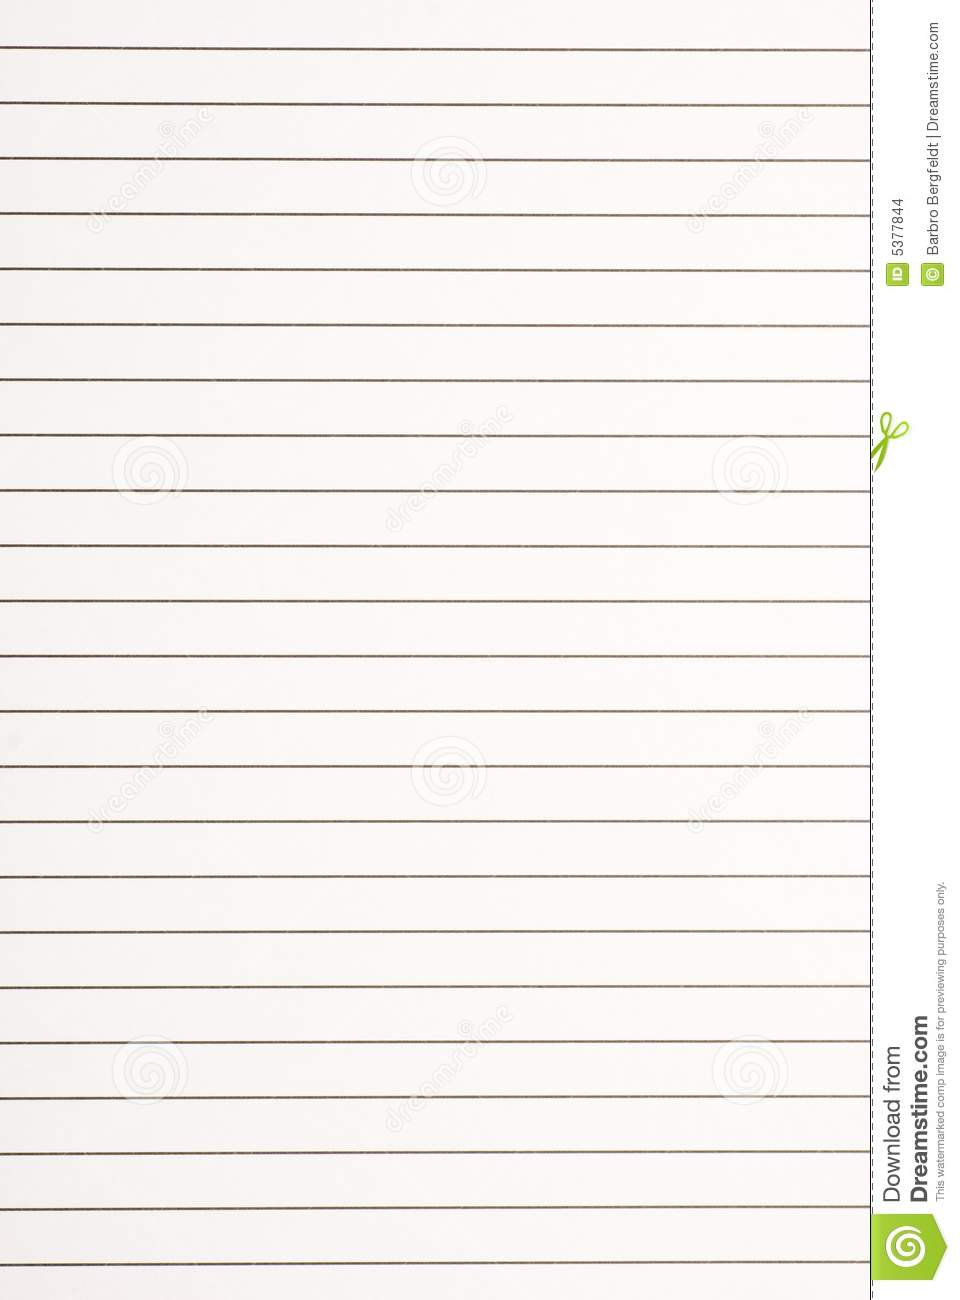 Lined paper note powerpoint background construction schedules lined paper note powerpoint background lined paper note powerpoint background toneelgroepblik Images